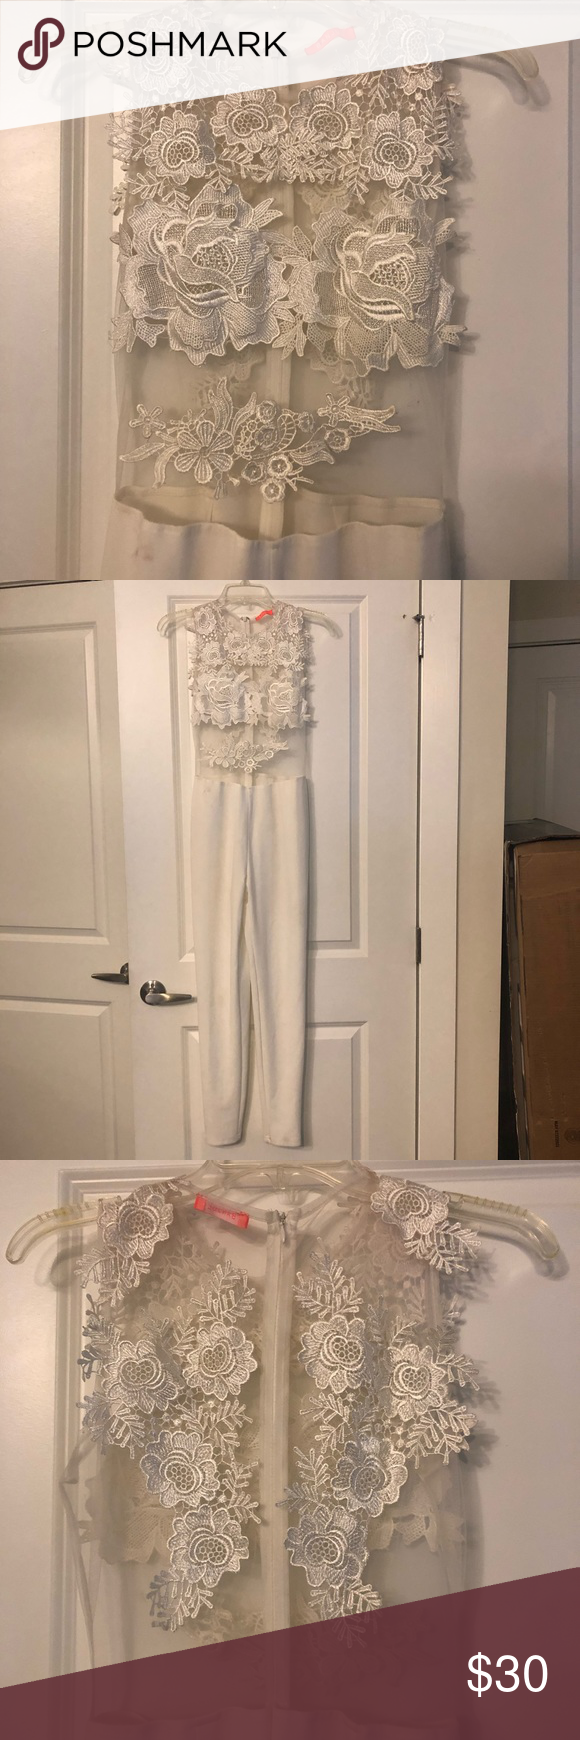 White Lacey Romper/ Jumpsuit Gallery